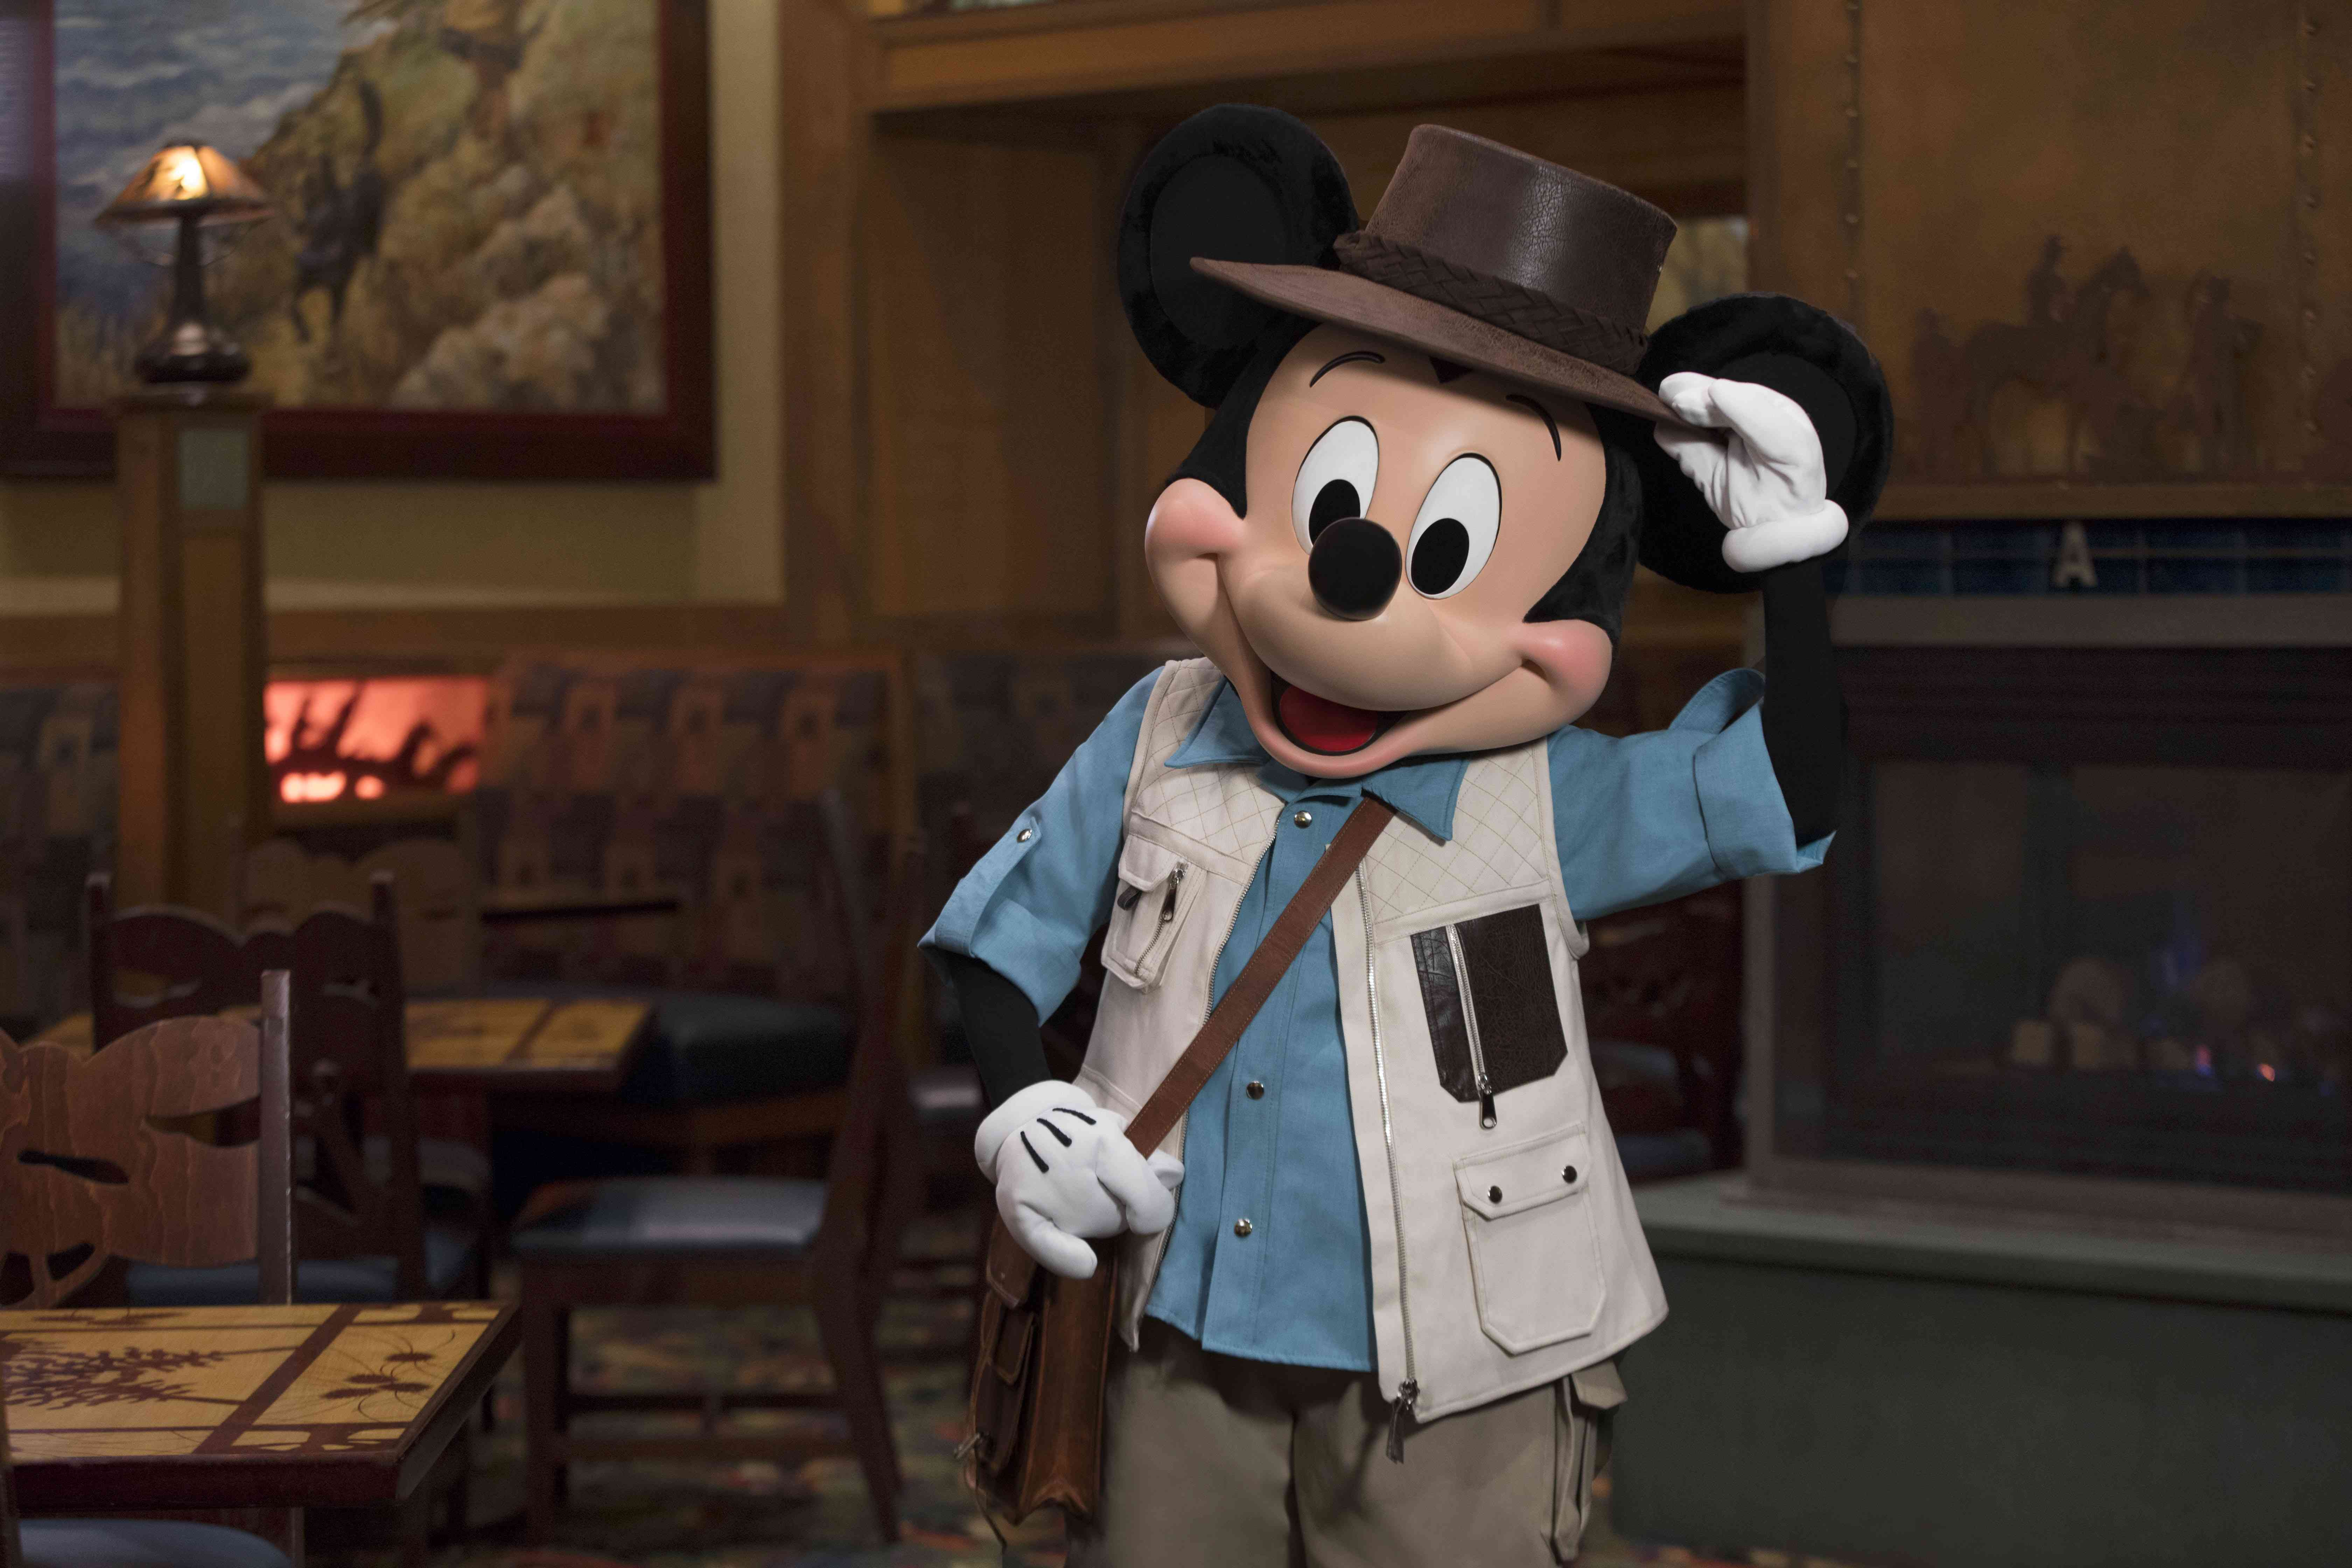 Mickey Mouse at Disneyland character meal